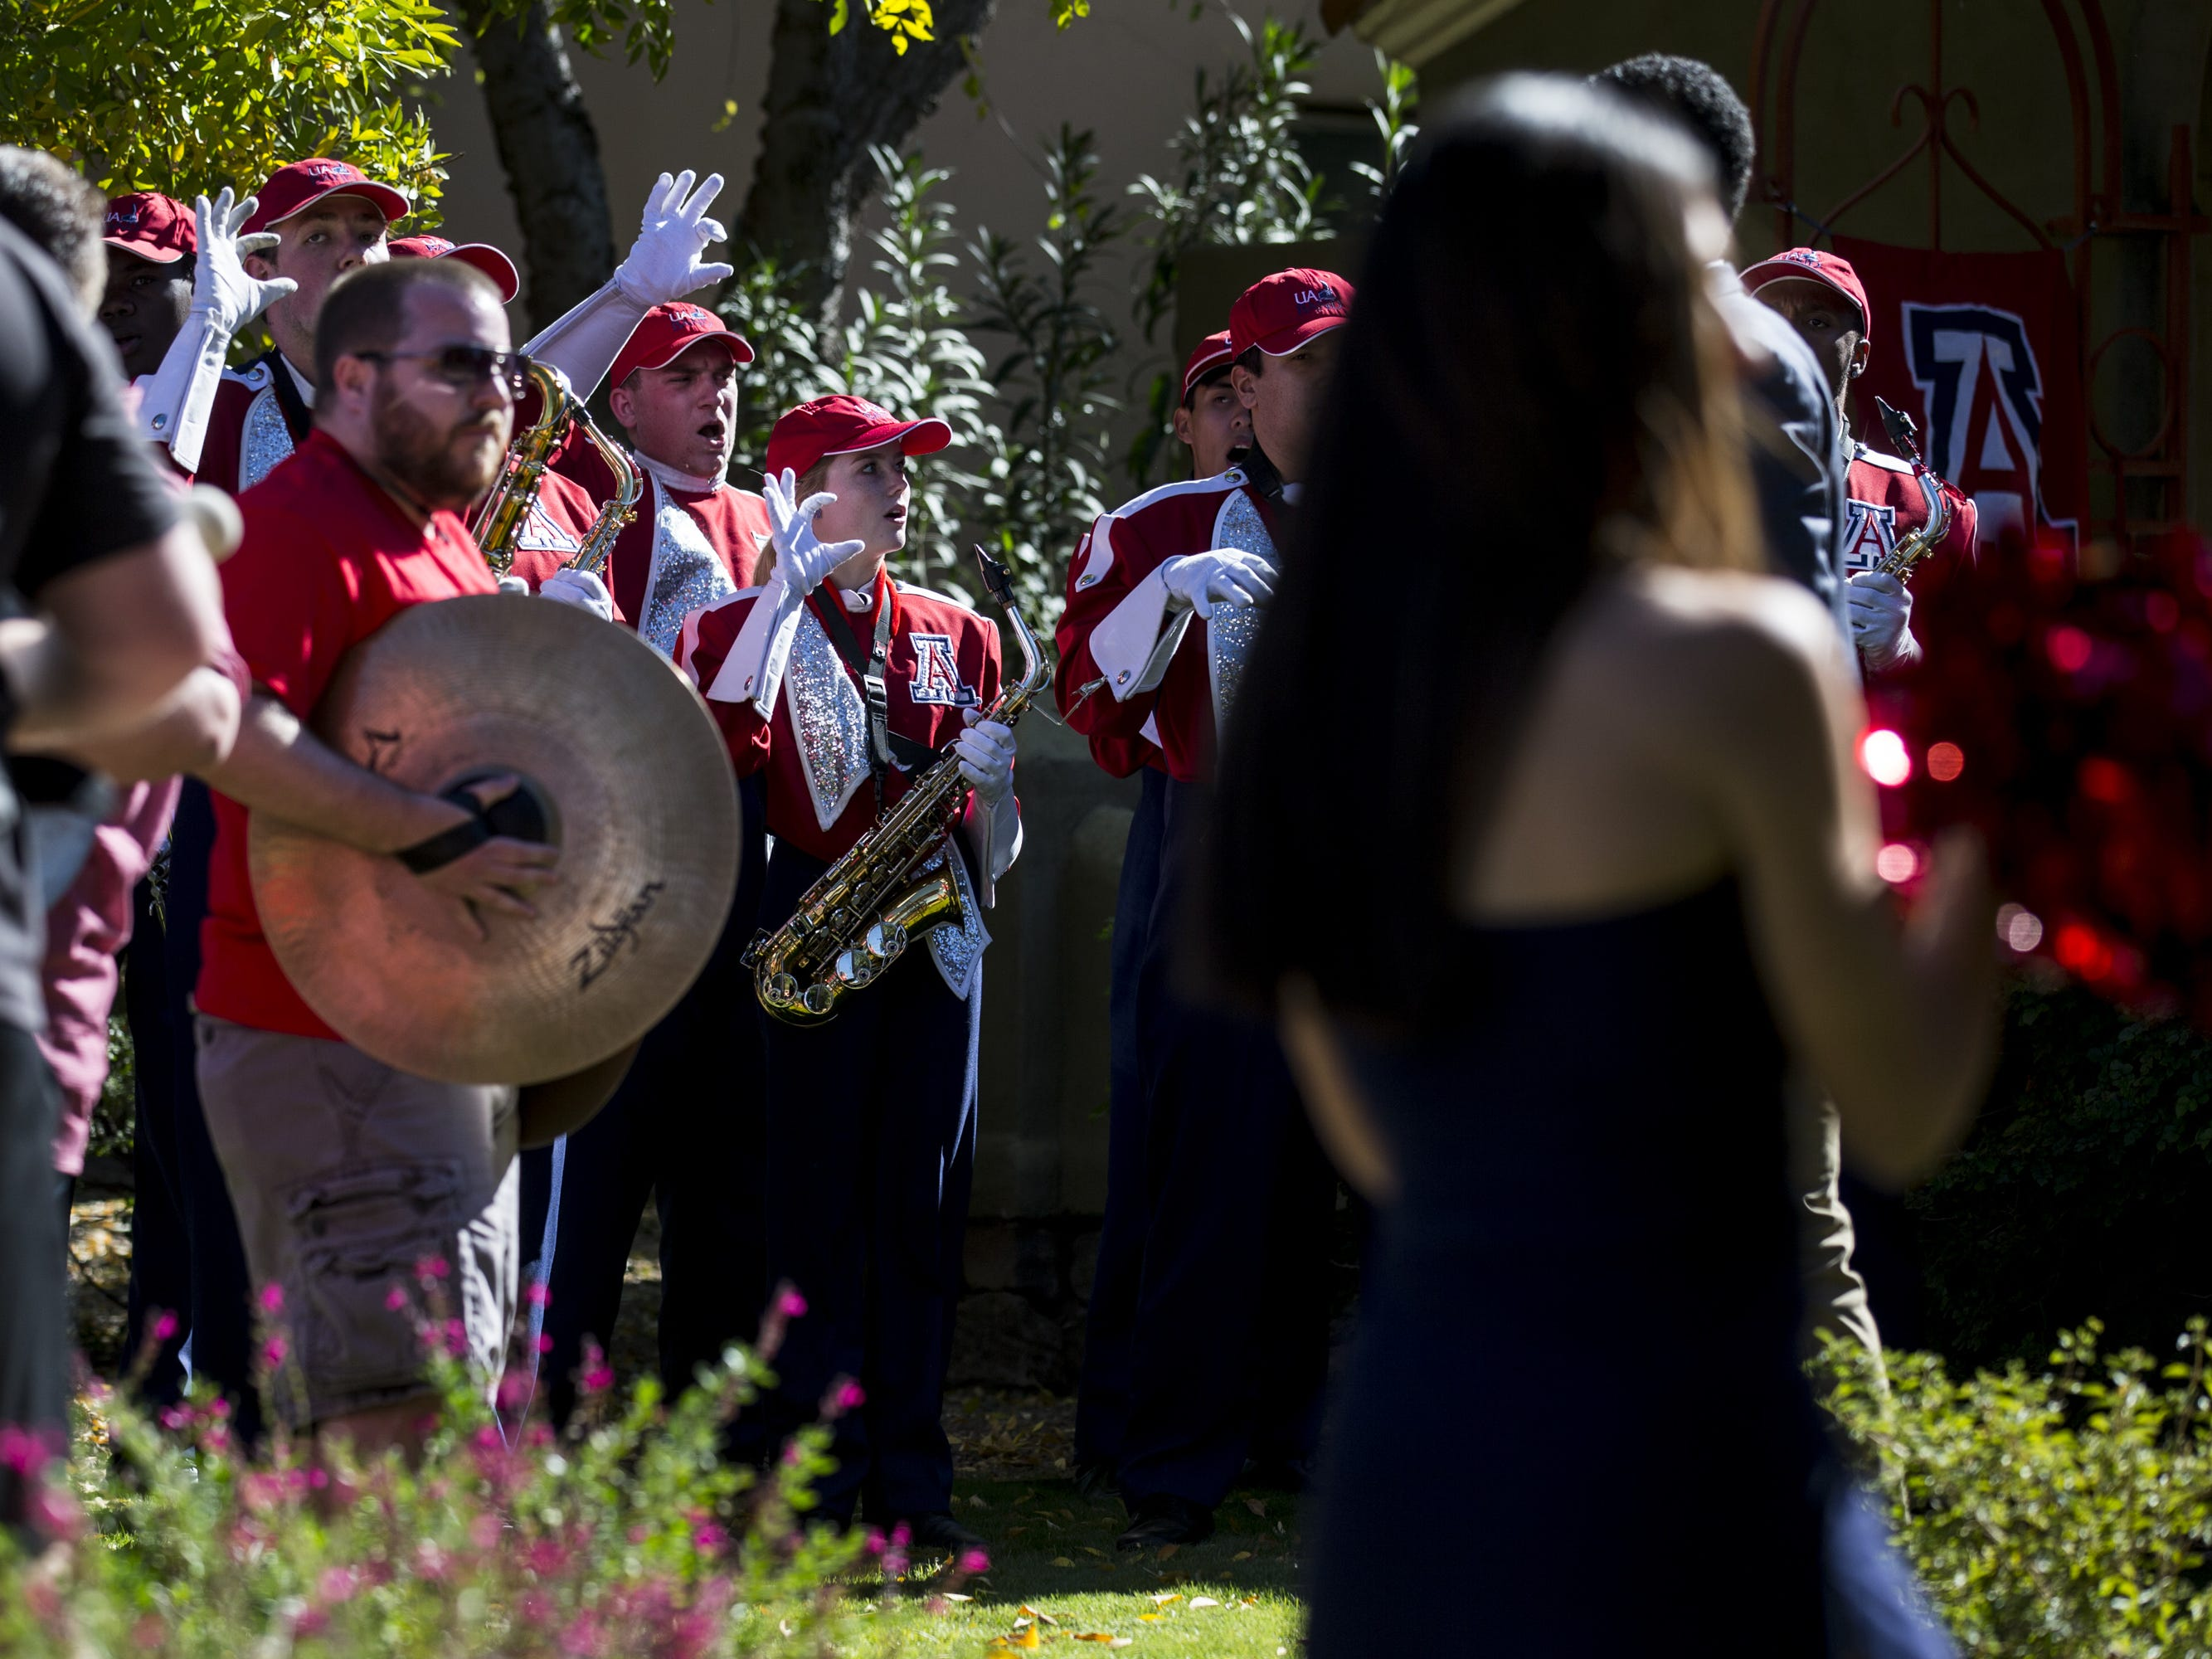 The Arizona marching band performs in a front yard before the Territorial Cup football game on Saturday, Nov. 24, 2018, at Arizona Stadium in Tucson, Ariz.